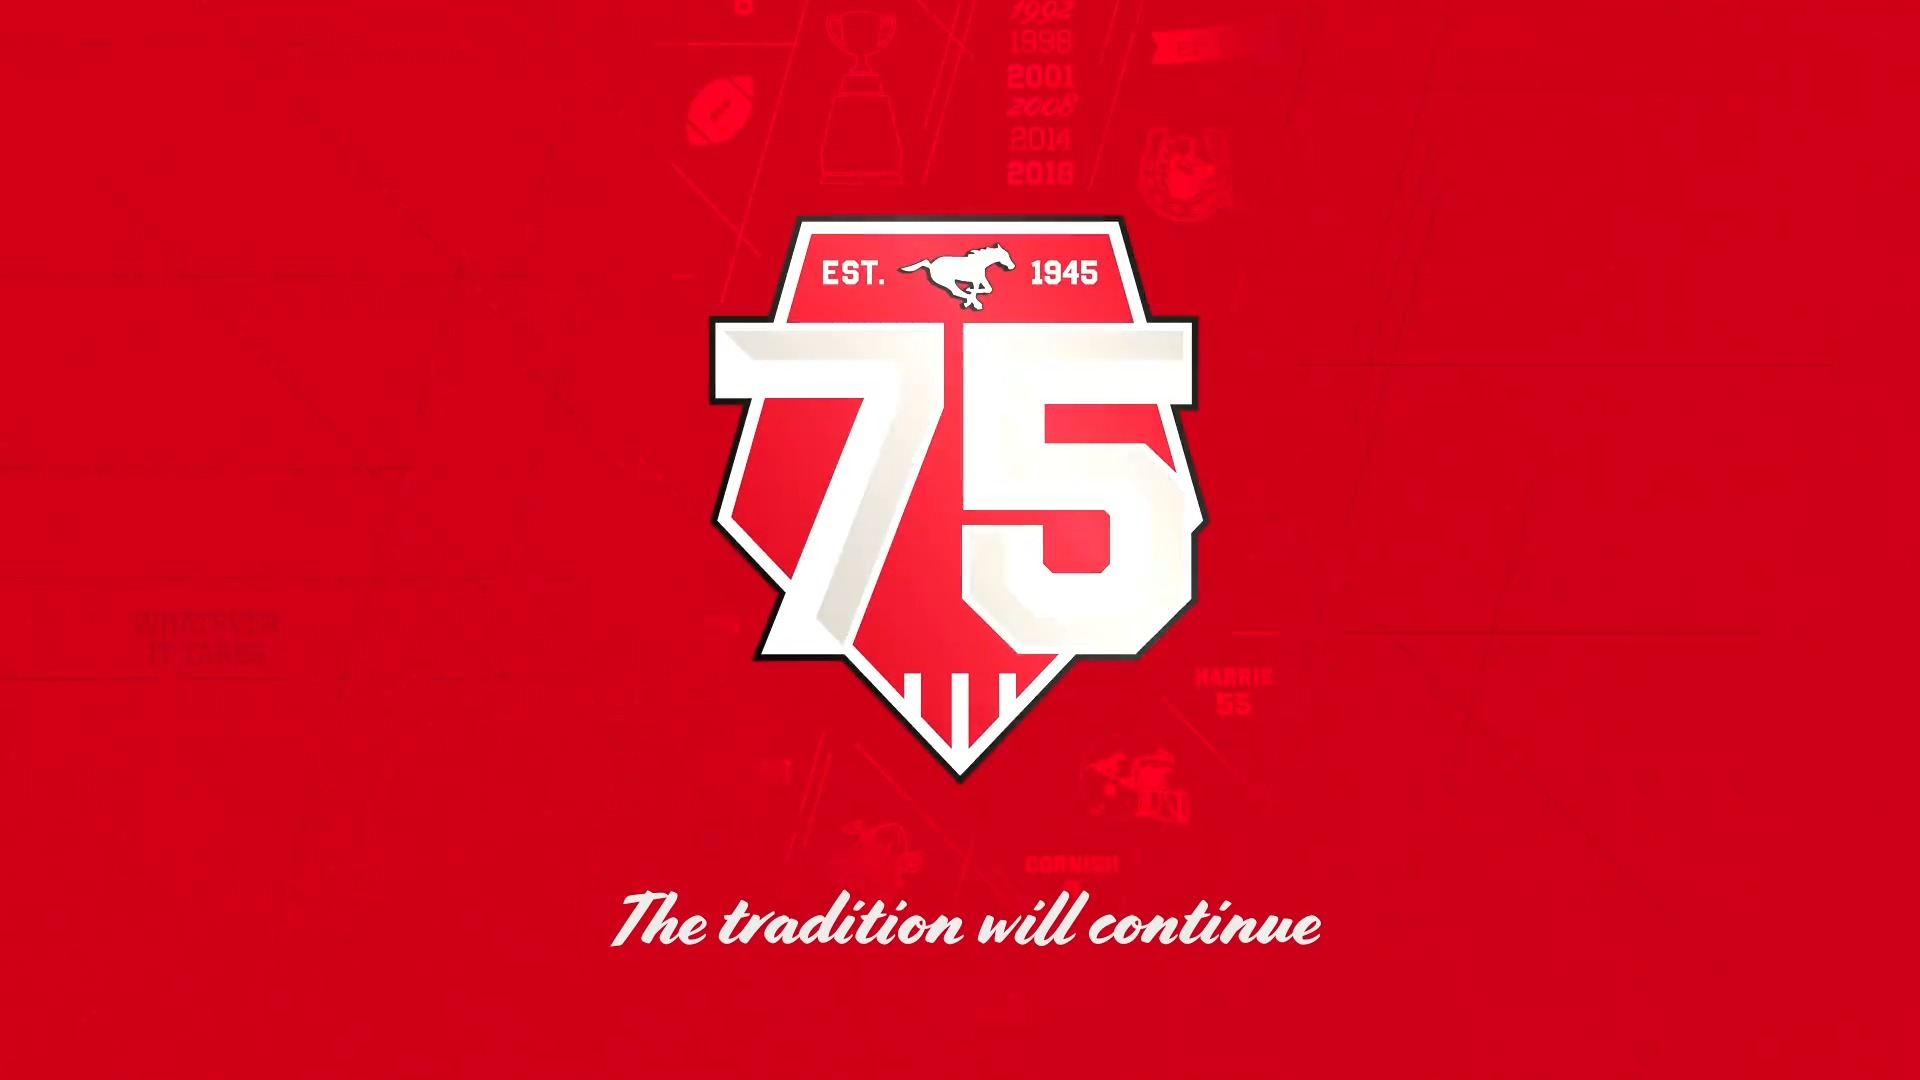 Stamps 75th Jersey – The Tradition Will Continue!